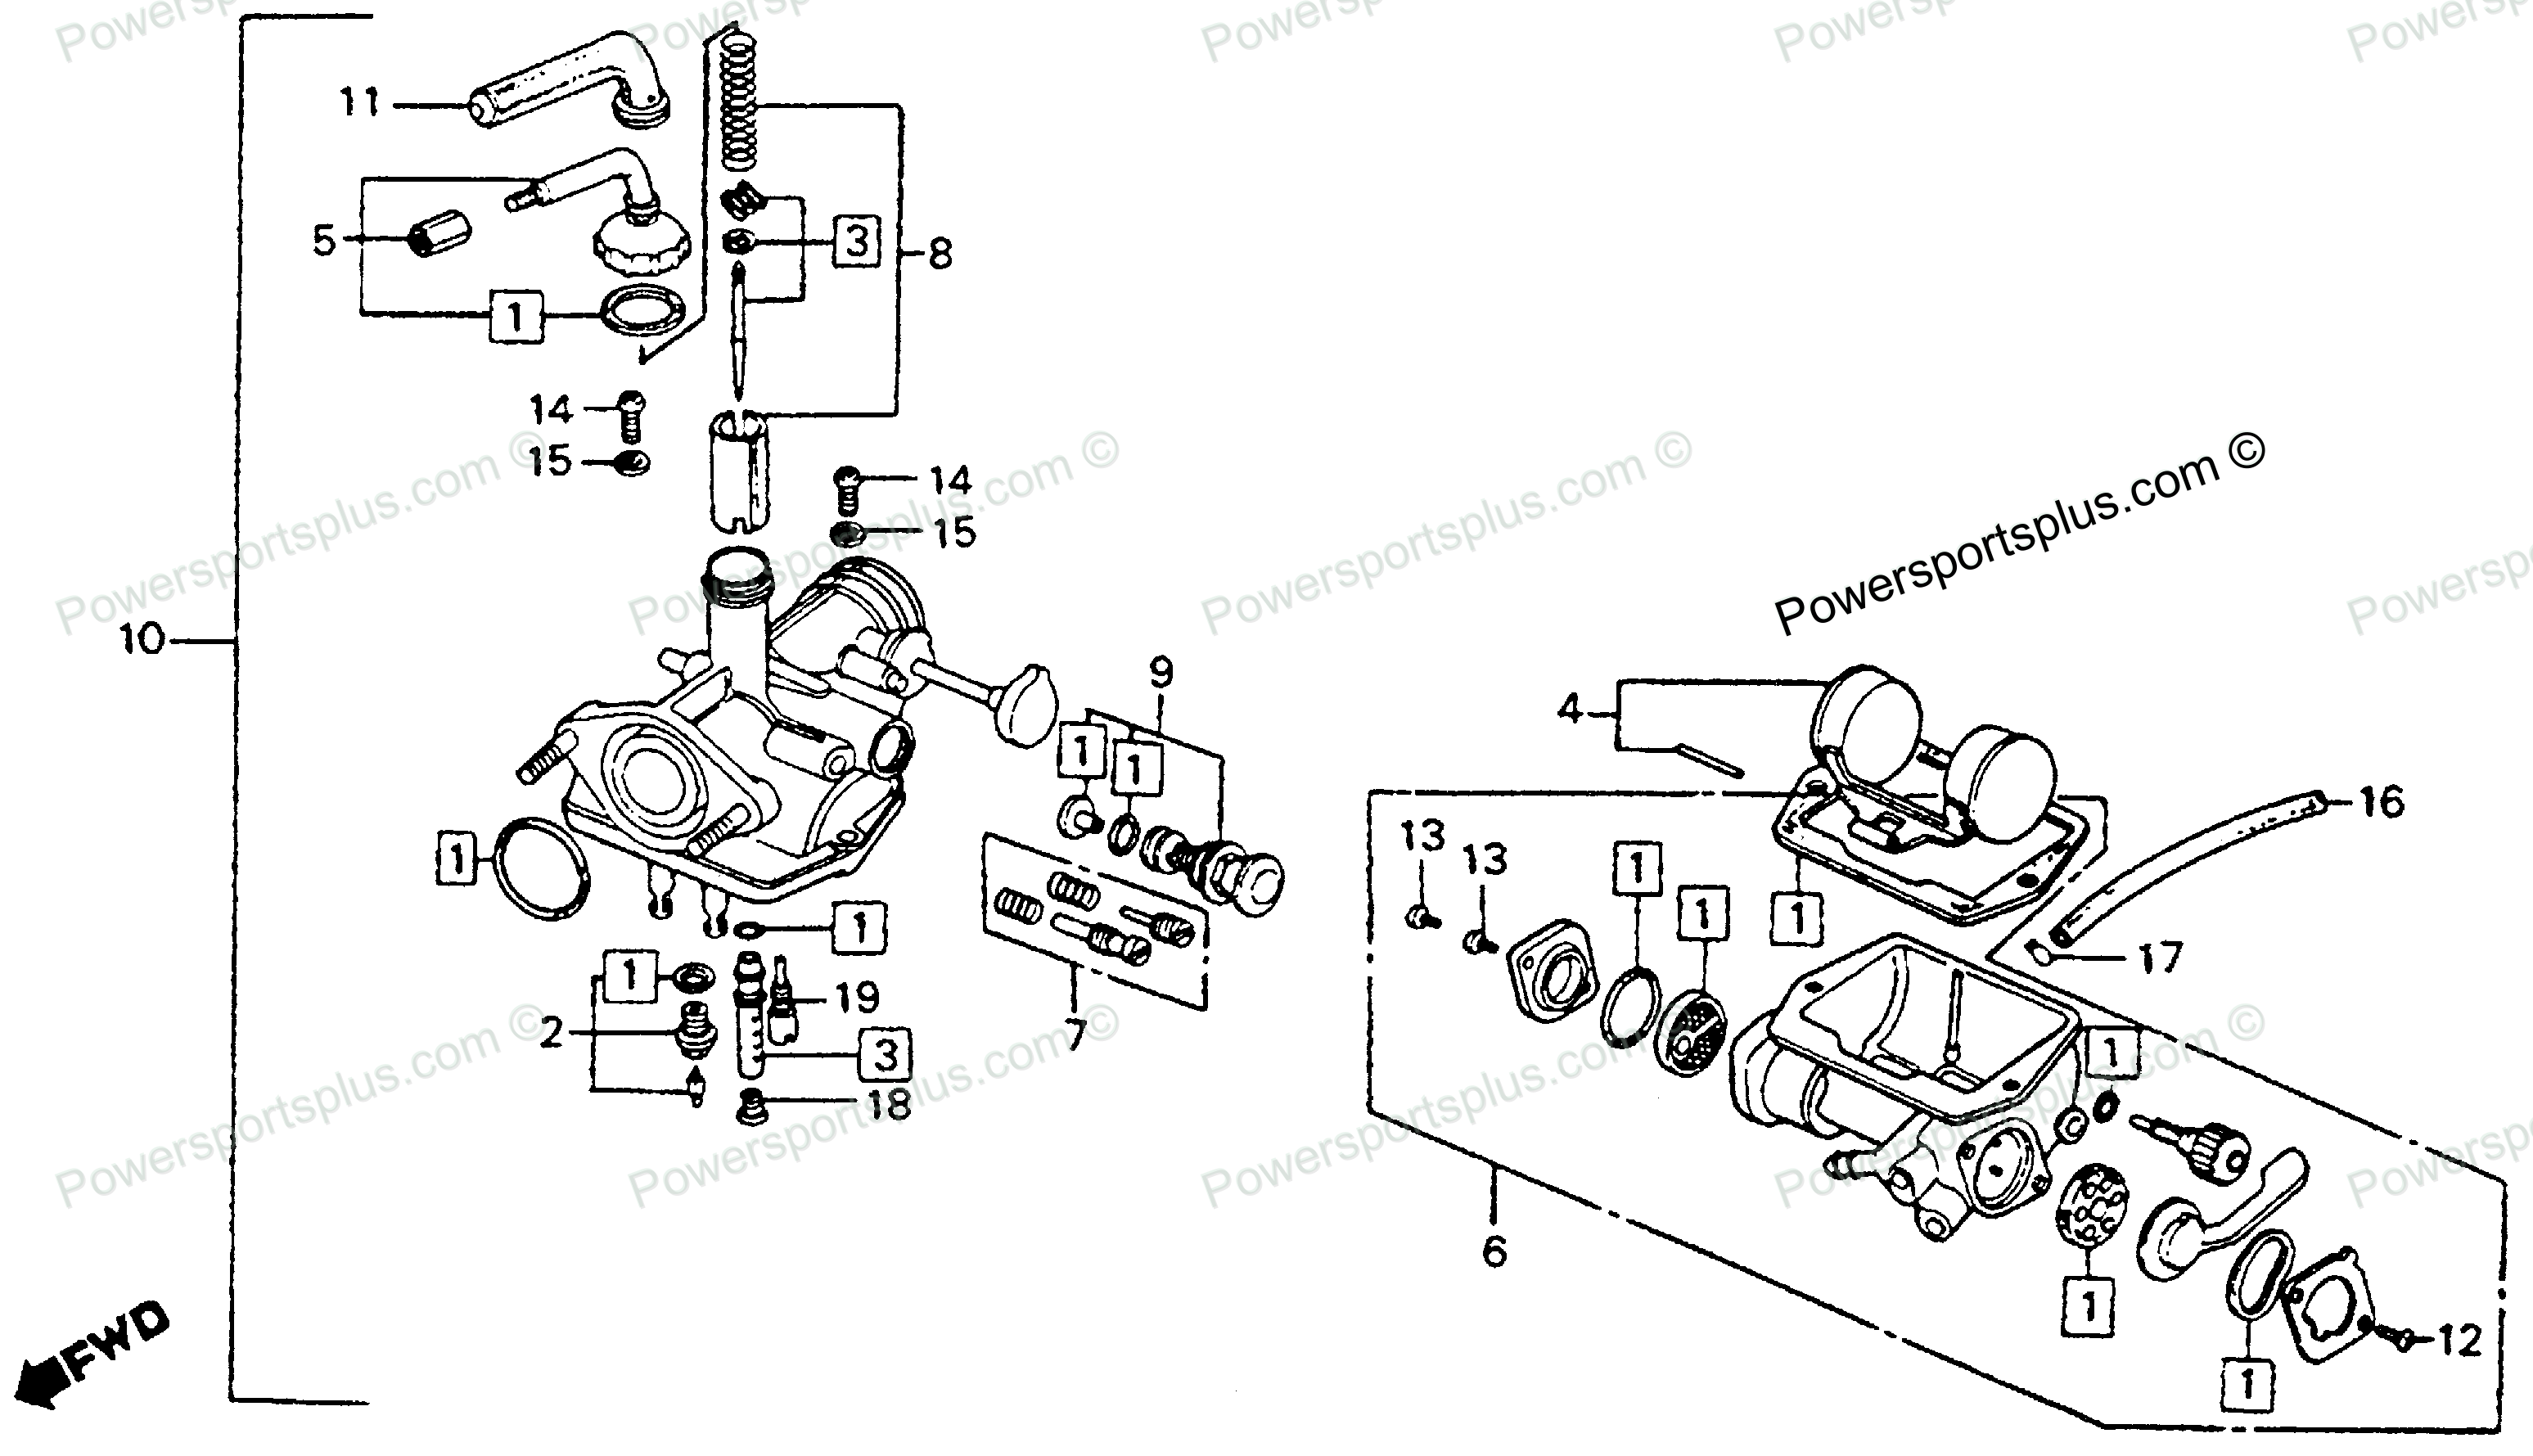 small resolution of diagram of honda motorcycle parts 1976 ct90 a carburetor k6 77 diagram honda motorcycle parts